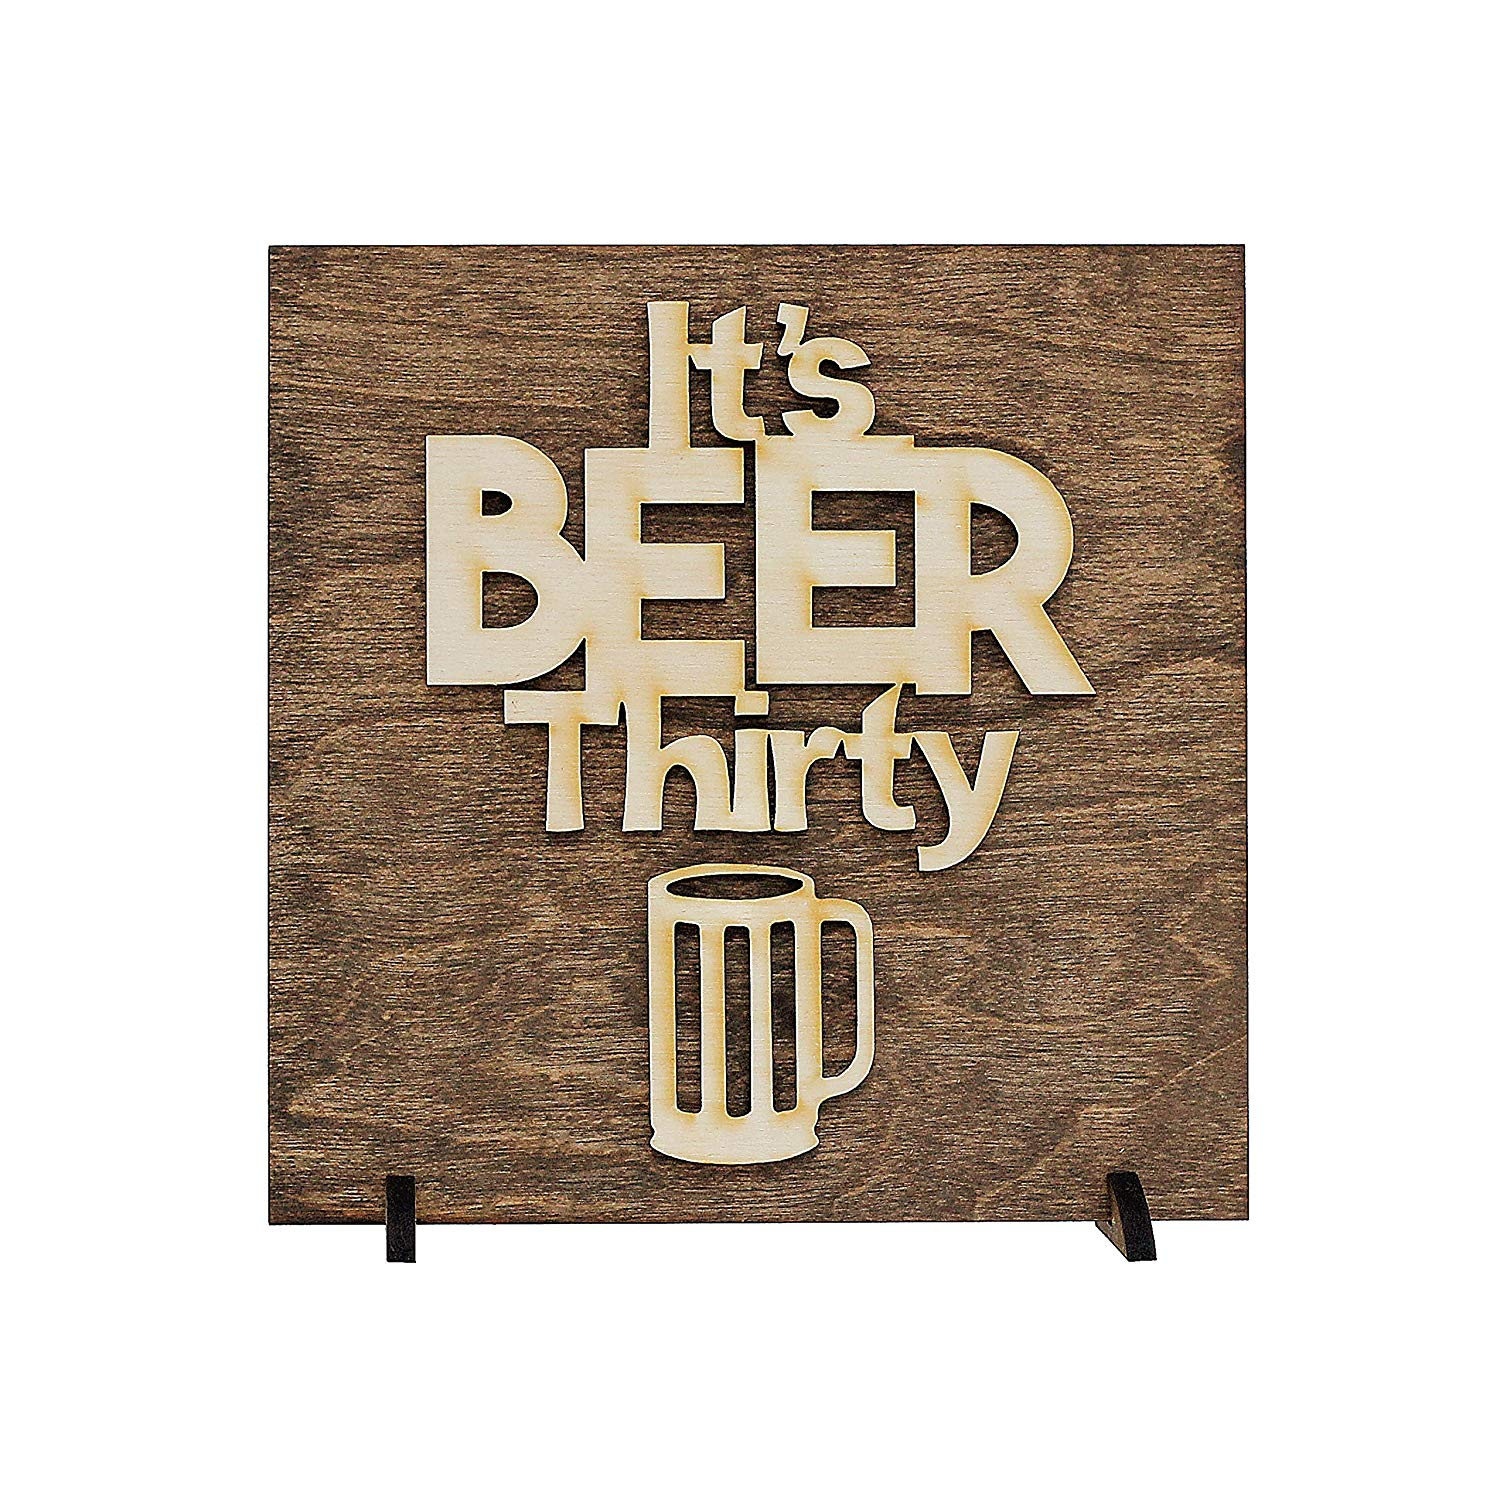 Gift Idea for Beer Lover, Man Cave, Laser Cut Wood Sign Art, Christmas, Stocking Stuffer